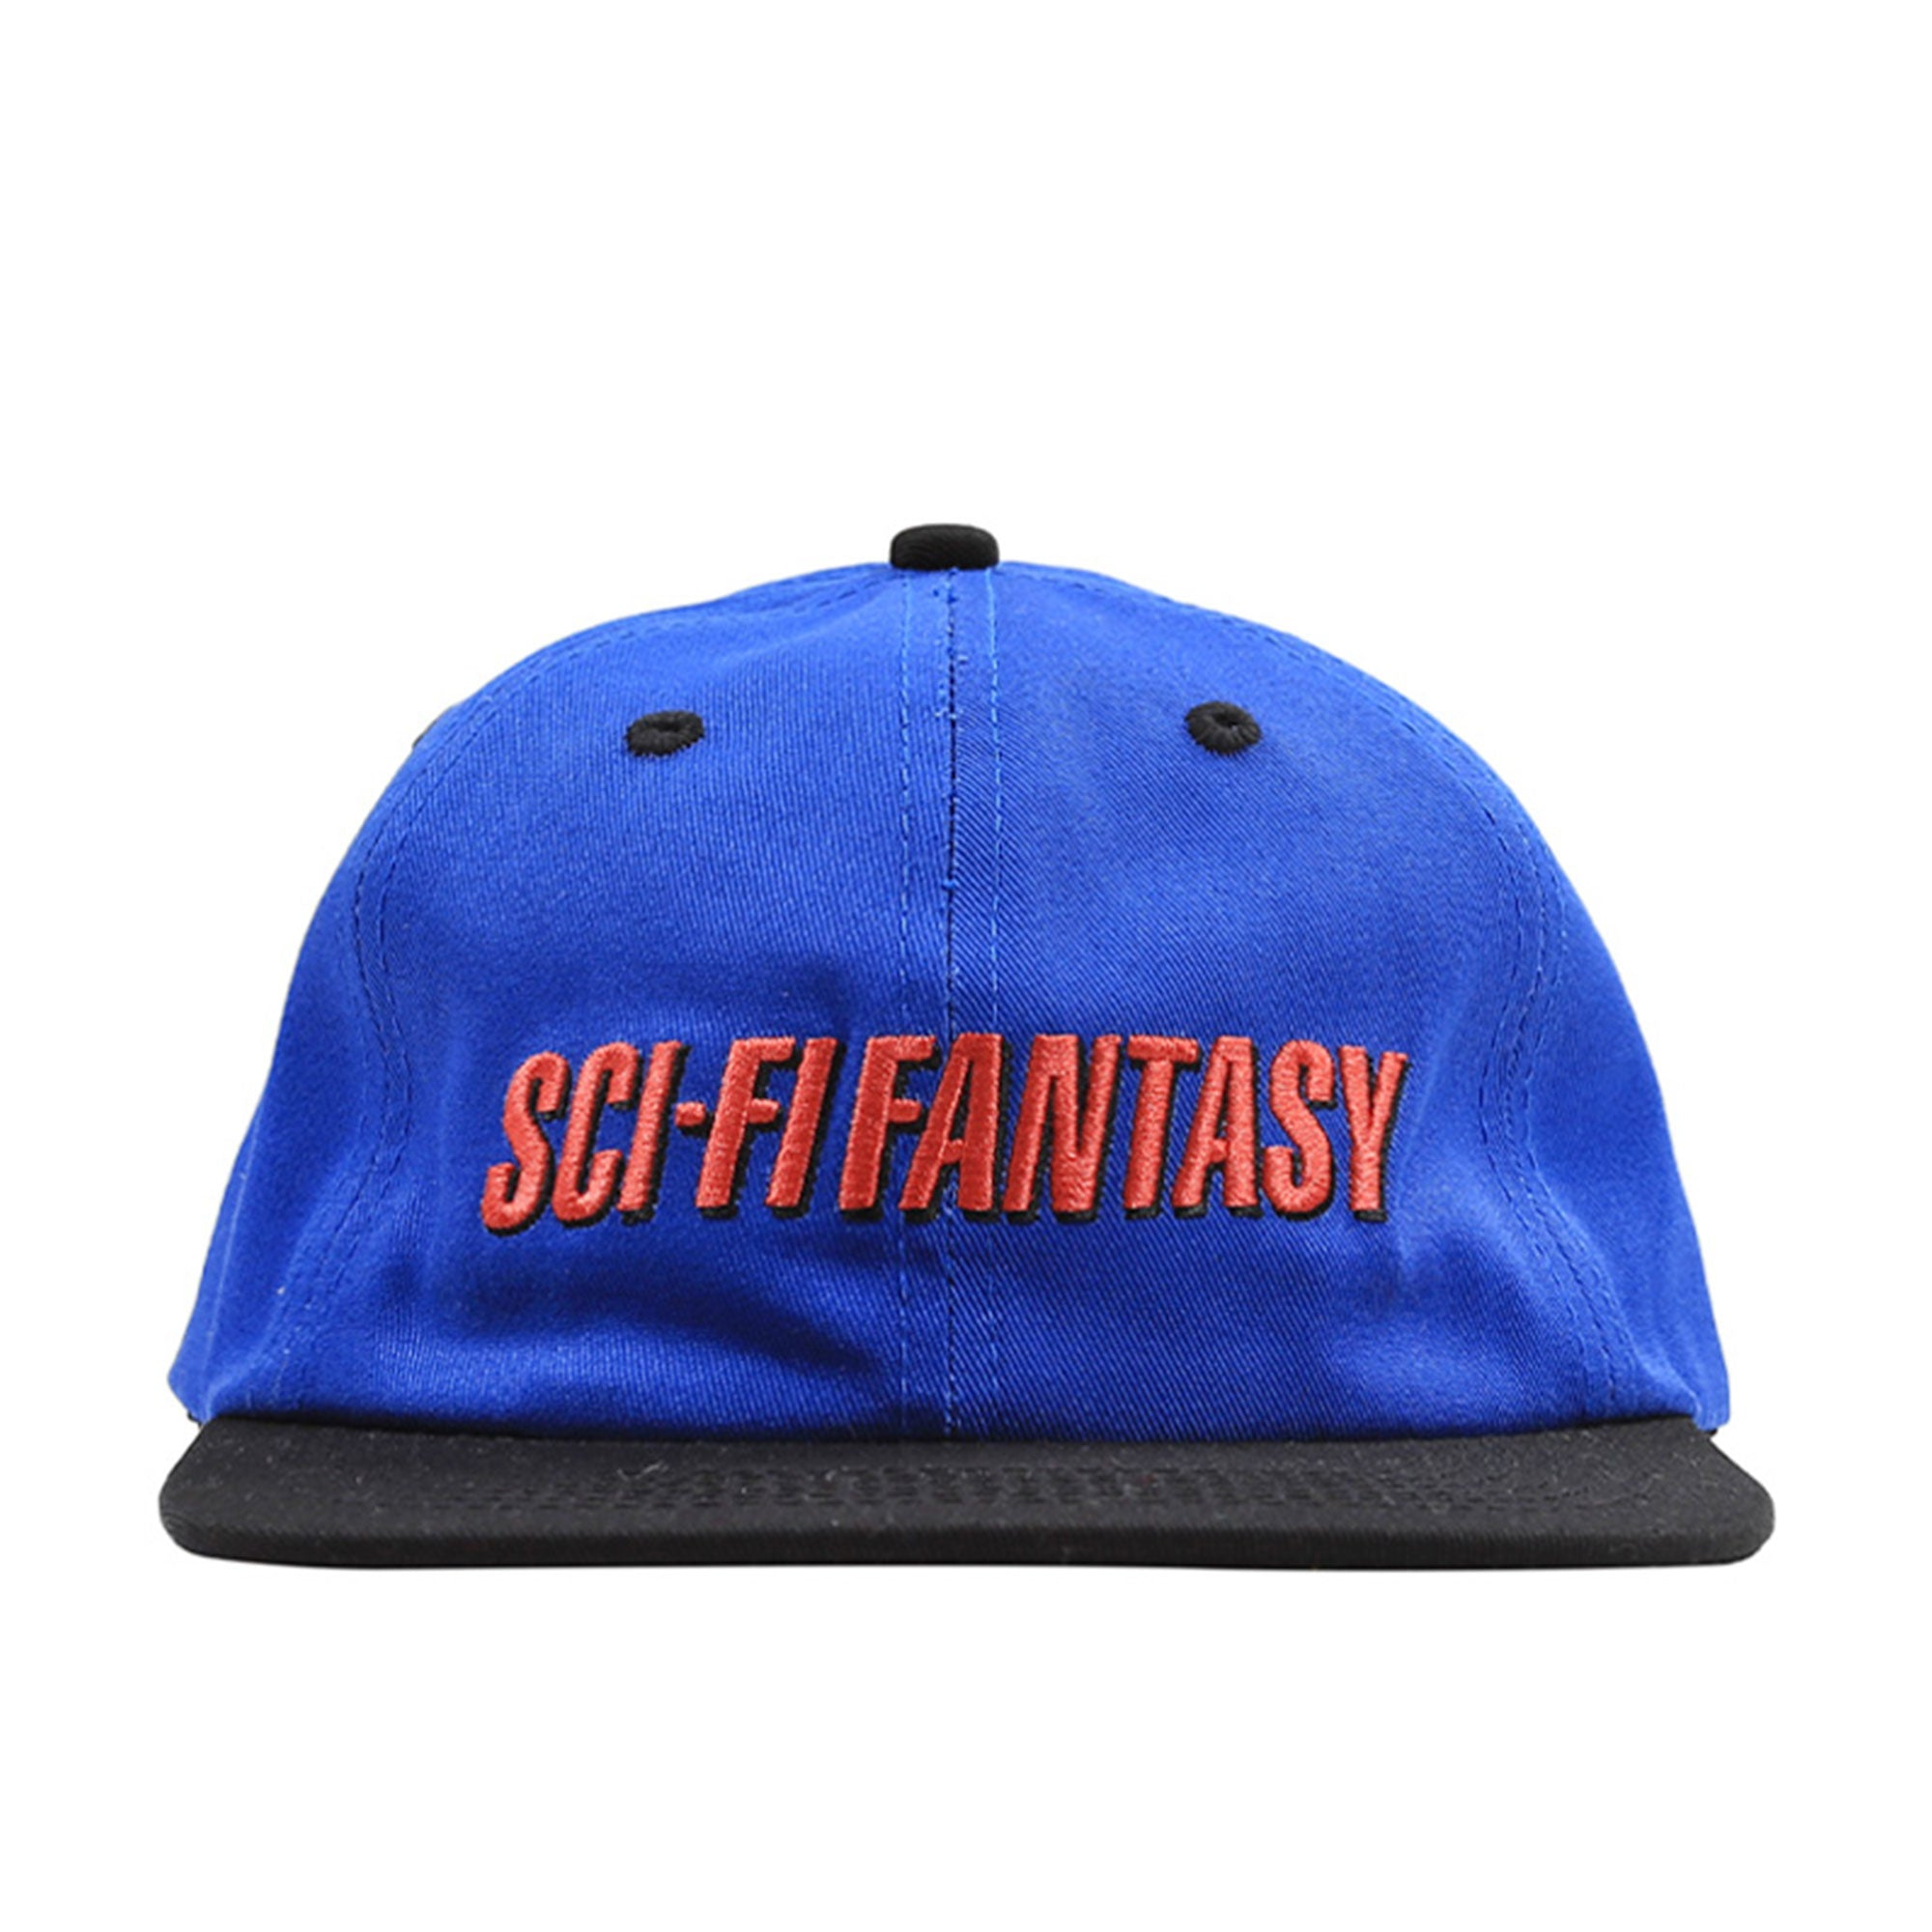 Sci-Fi Fantasy Fast Logo Cap Product Photo #1